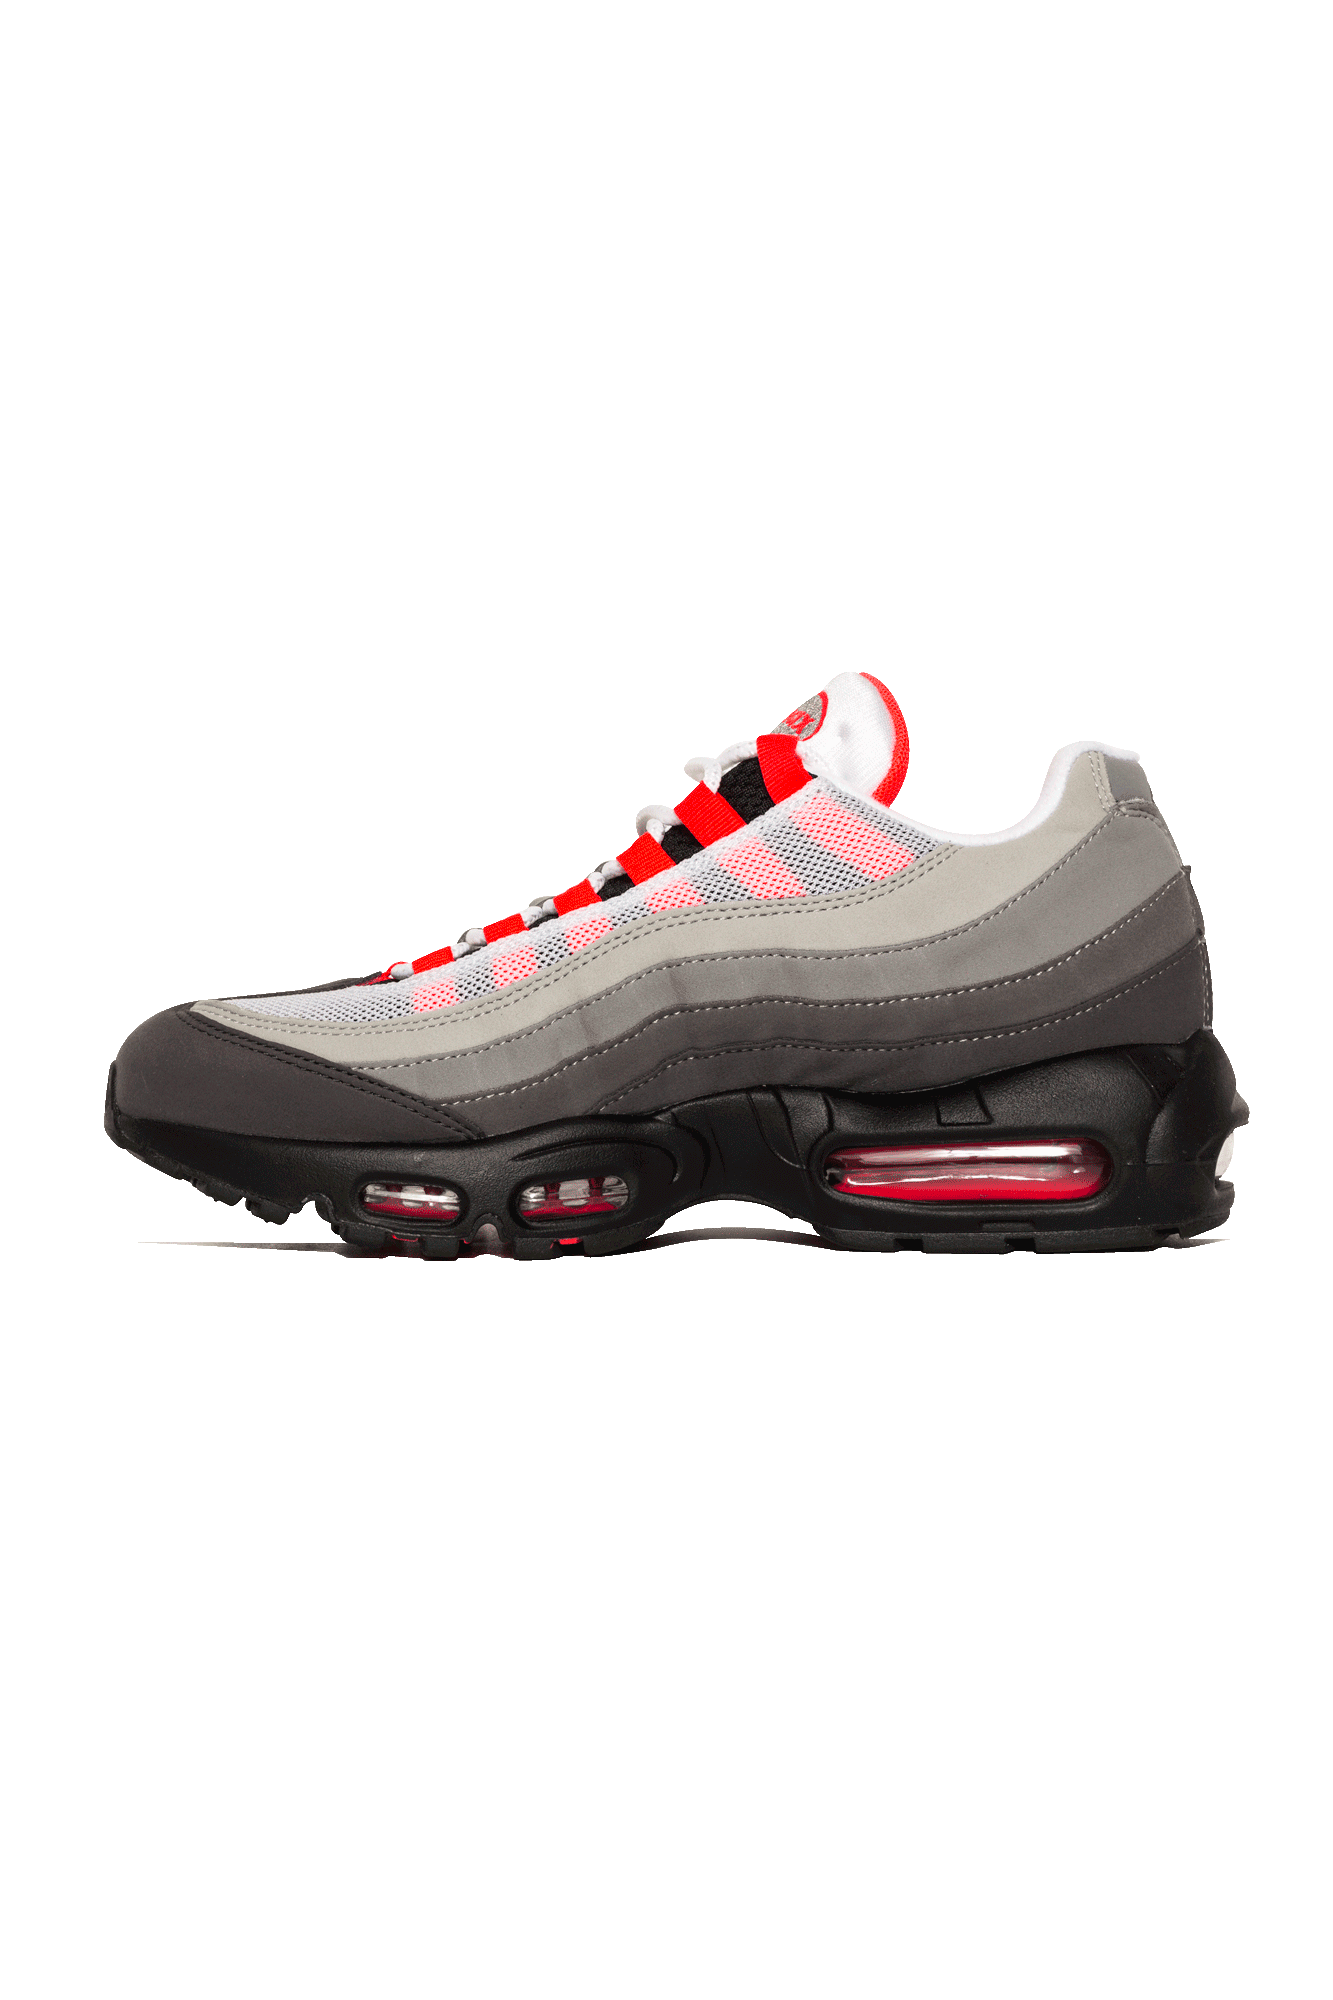 Nike Air Max 95 OG Solar Red Out Now | AT2865 100 | Stuarts